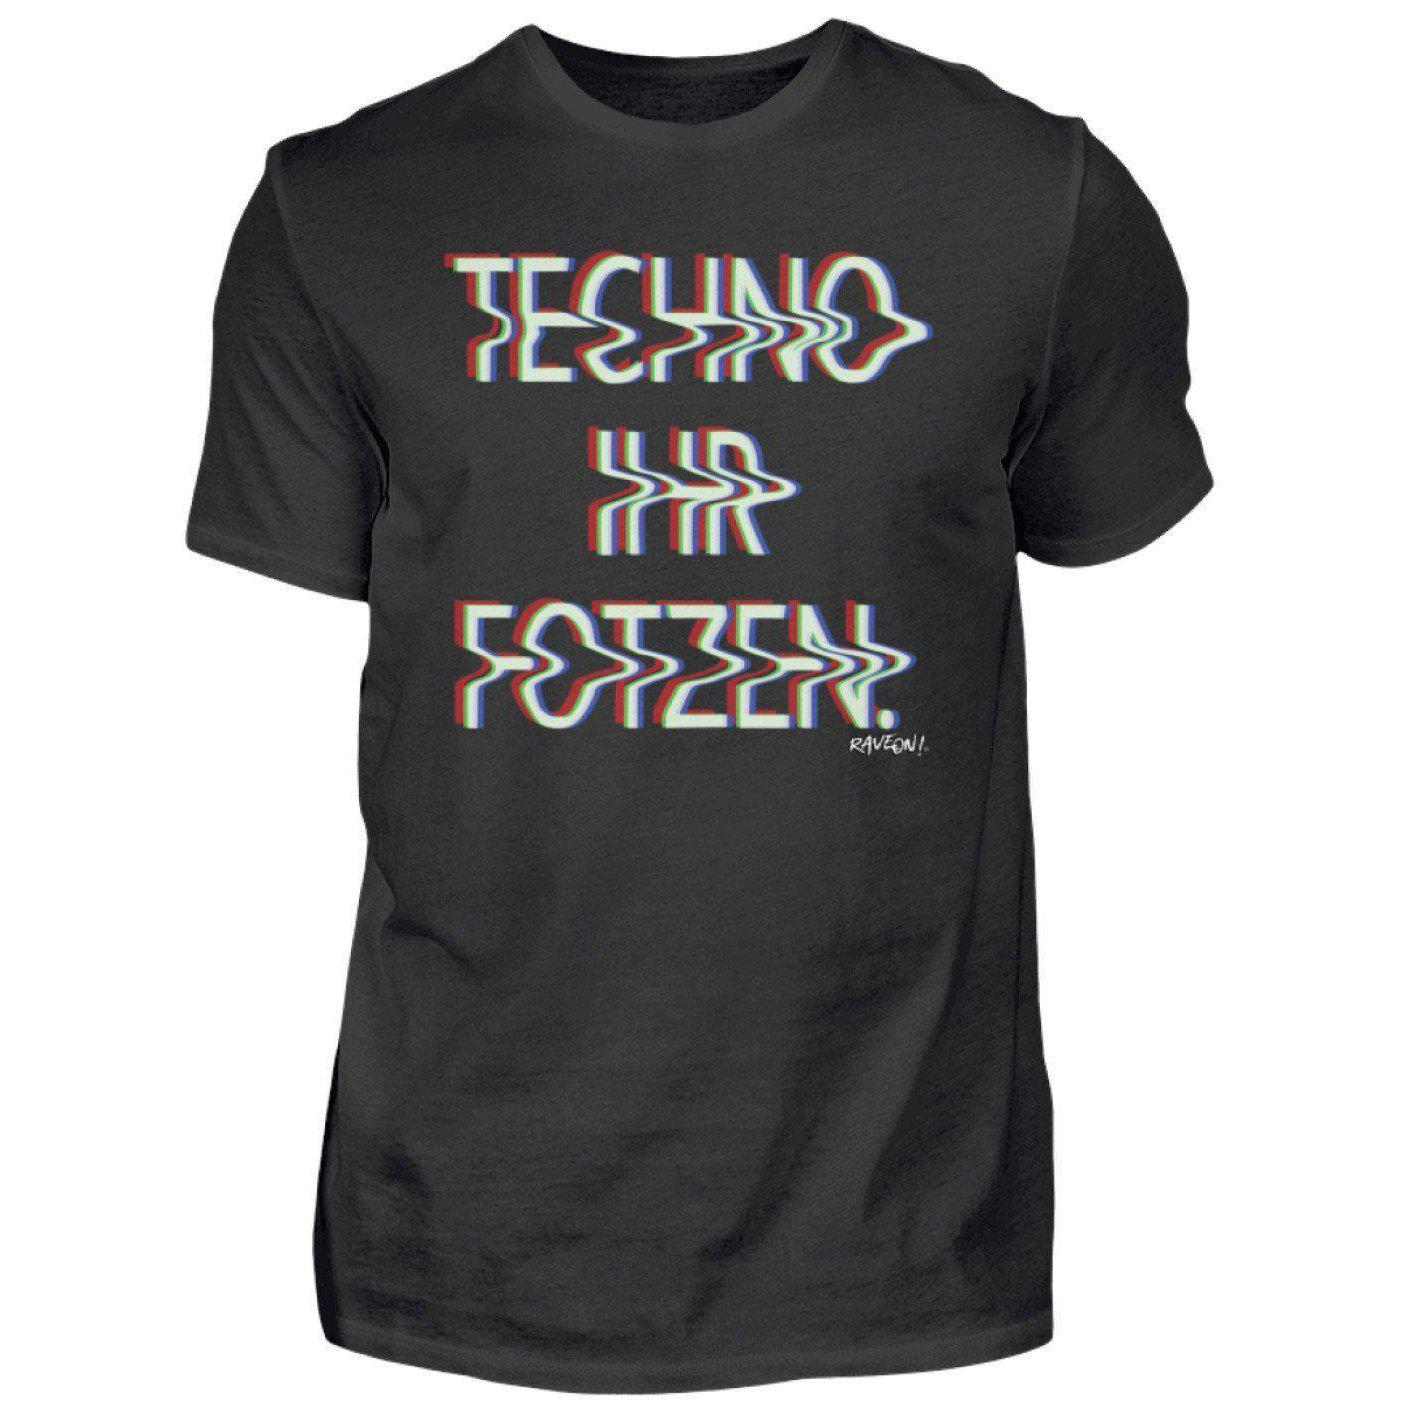 Techno Ihr F*tzen - Rave On!® - Herren Shirt Herren Basic T-Shirt Schwarz / S - Rave On!® der Club & Techno Szene Shop für Coole Junge Mode Streetwear Style & Fashion Outfits + Sexy Festival 420 Stuff